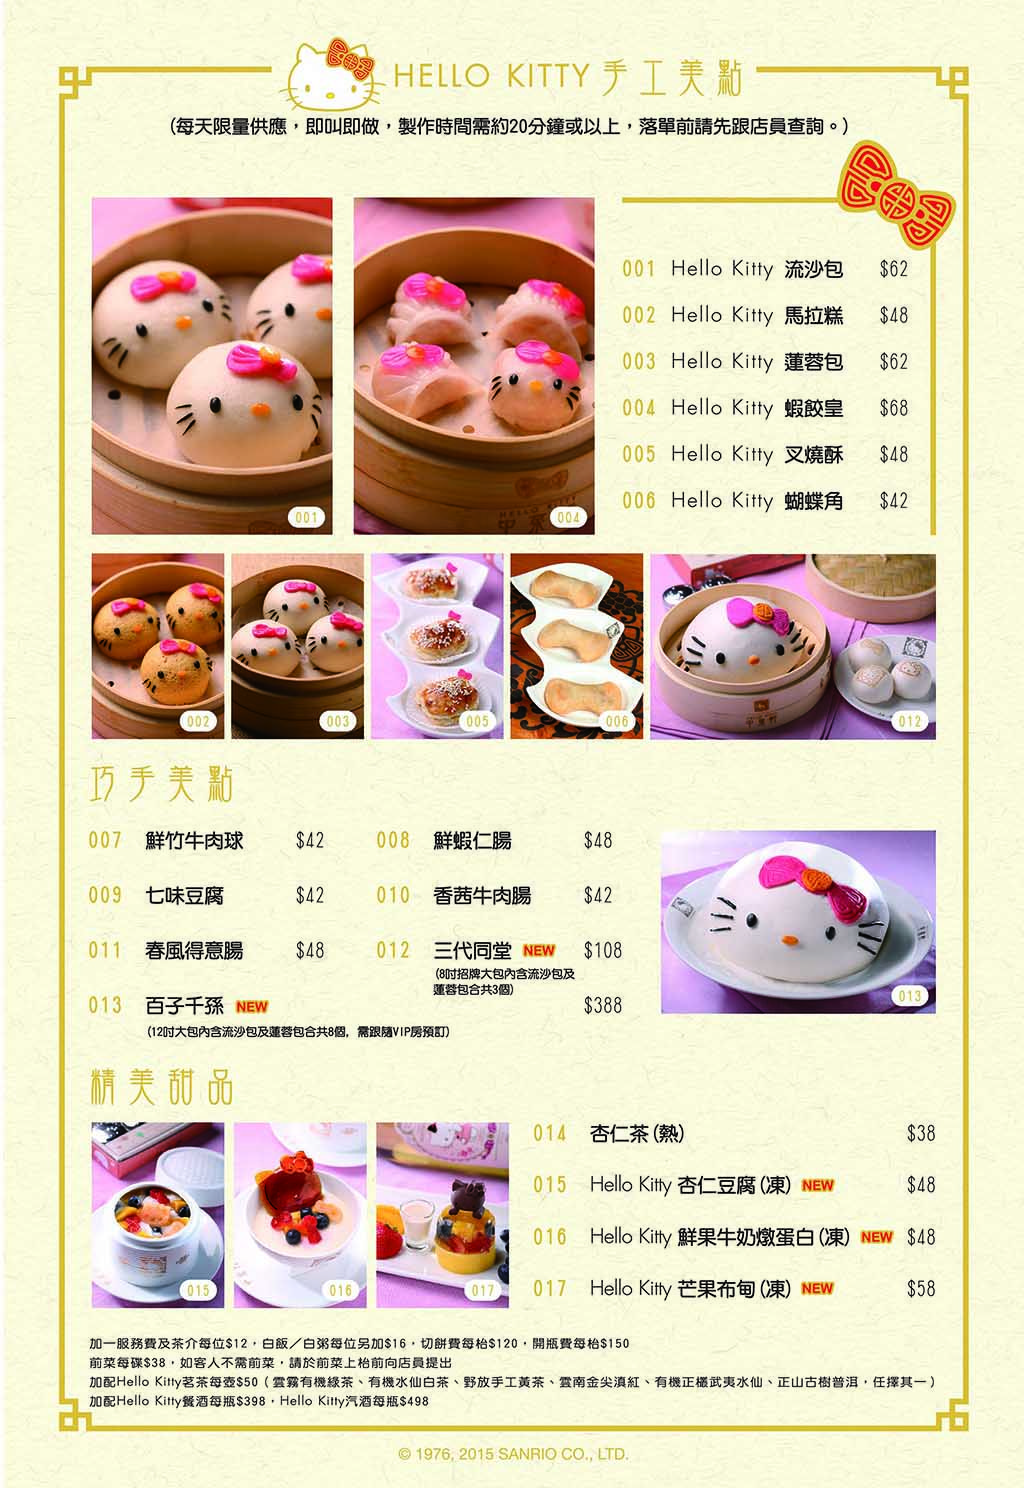 Cuisine Hello Kitty Ecoiffier Hello Kitty 中菜軒 Chinese Cuisine Hong Kong Macau